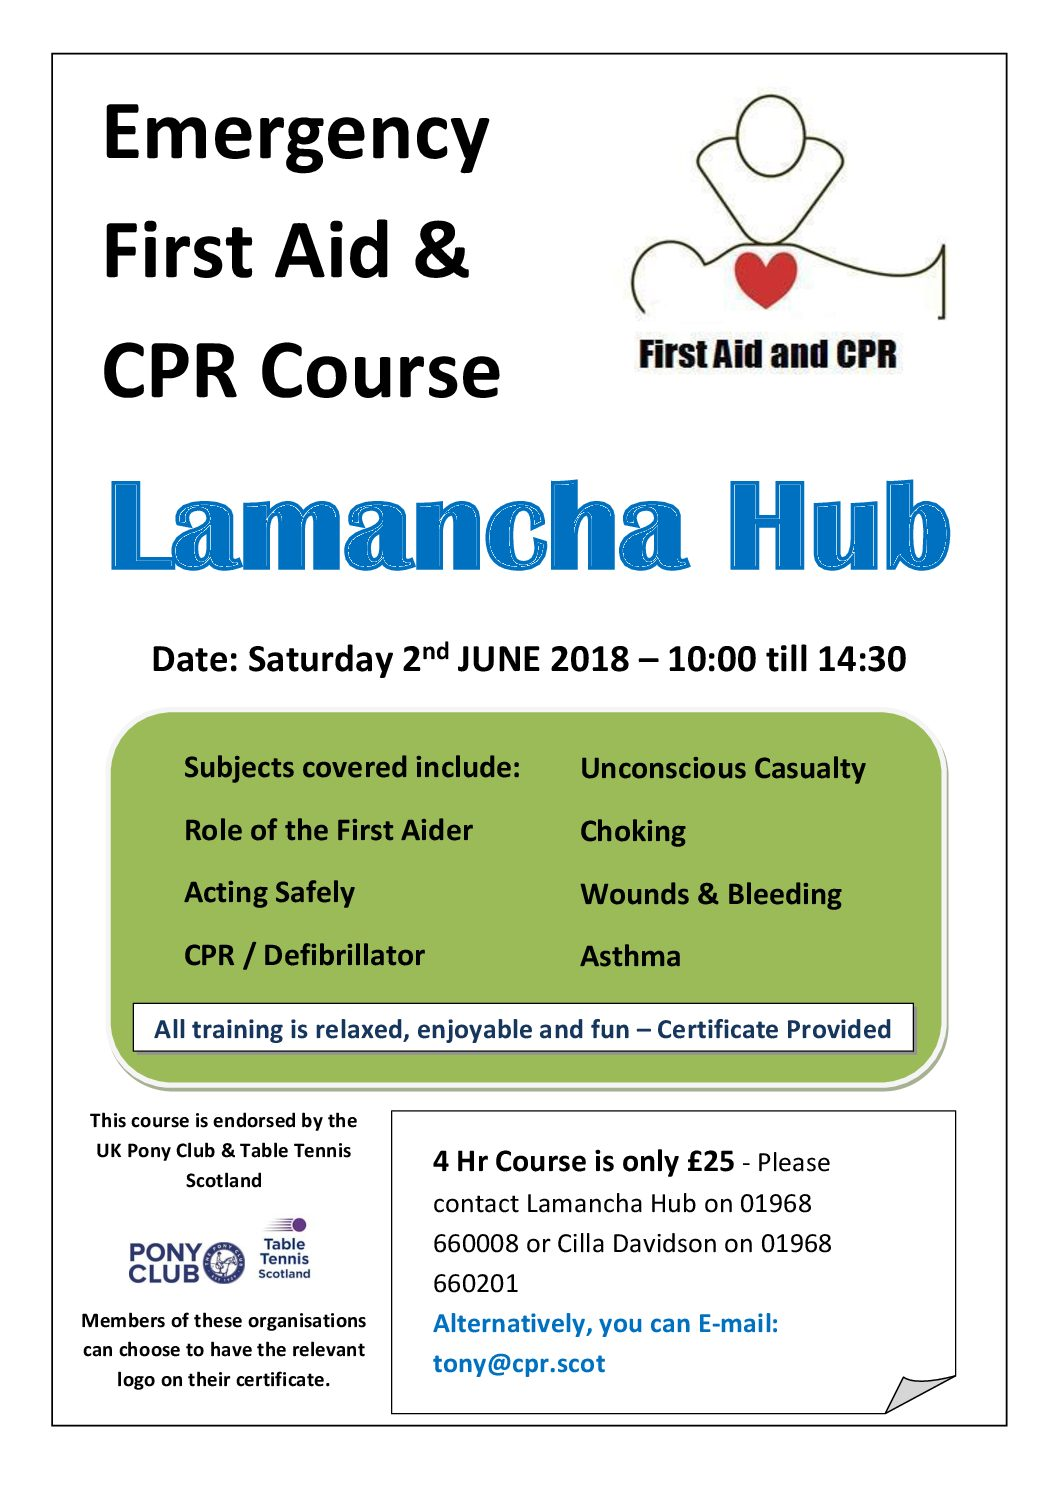 Emergency First Aid & CPR Course